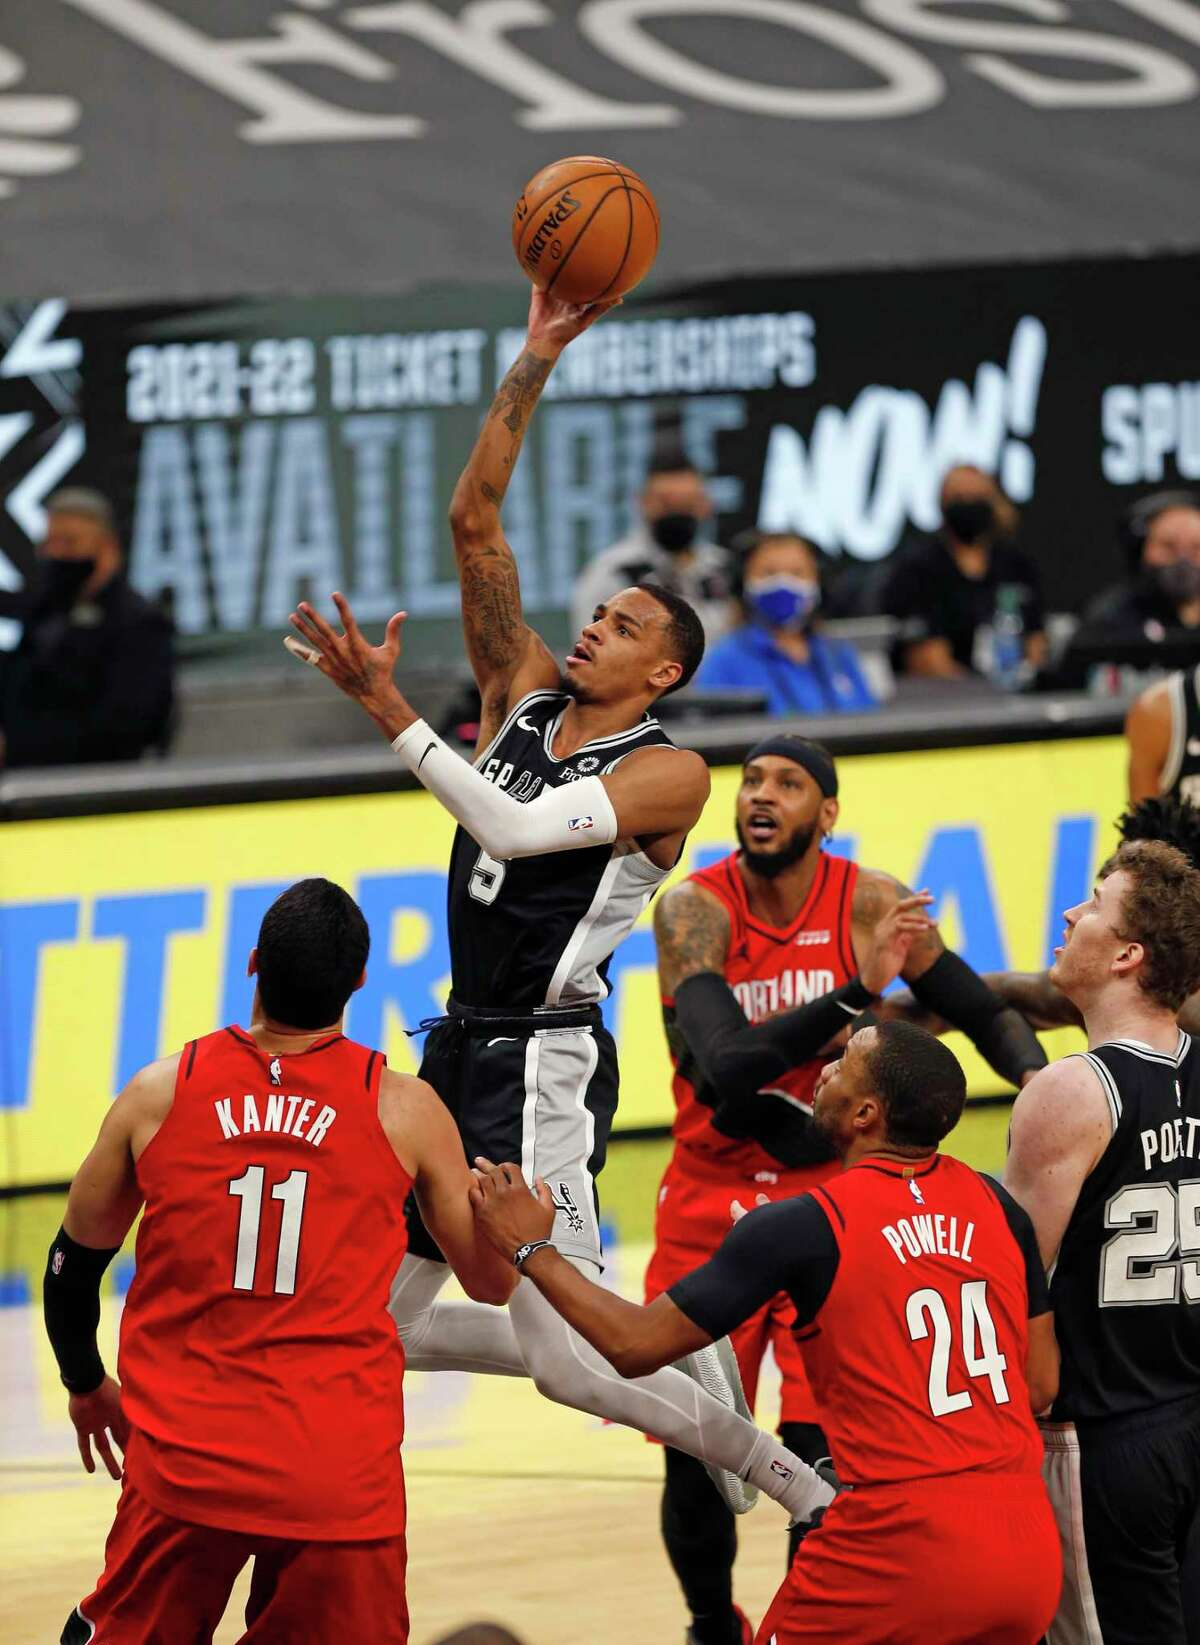 SAN ANTONIO, TX - APRIl 16: Dejounte Murray #5 of the San Antonio Spurs drives thru the Portland Trailblazers defense in the first half at AT&T Center on April 16, 2021 in San Antonio, Texas. NOTE TO USER: User expressly acknowledges and agrees that , by downloading and or using this photograph, User is consenting to the terms and conditions of the Getty Images License Agreement. (Photo by Ronald Cortes/Getty Images)